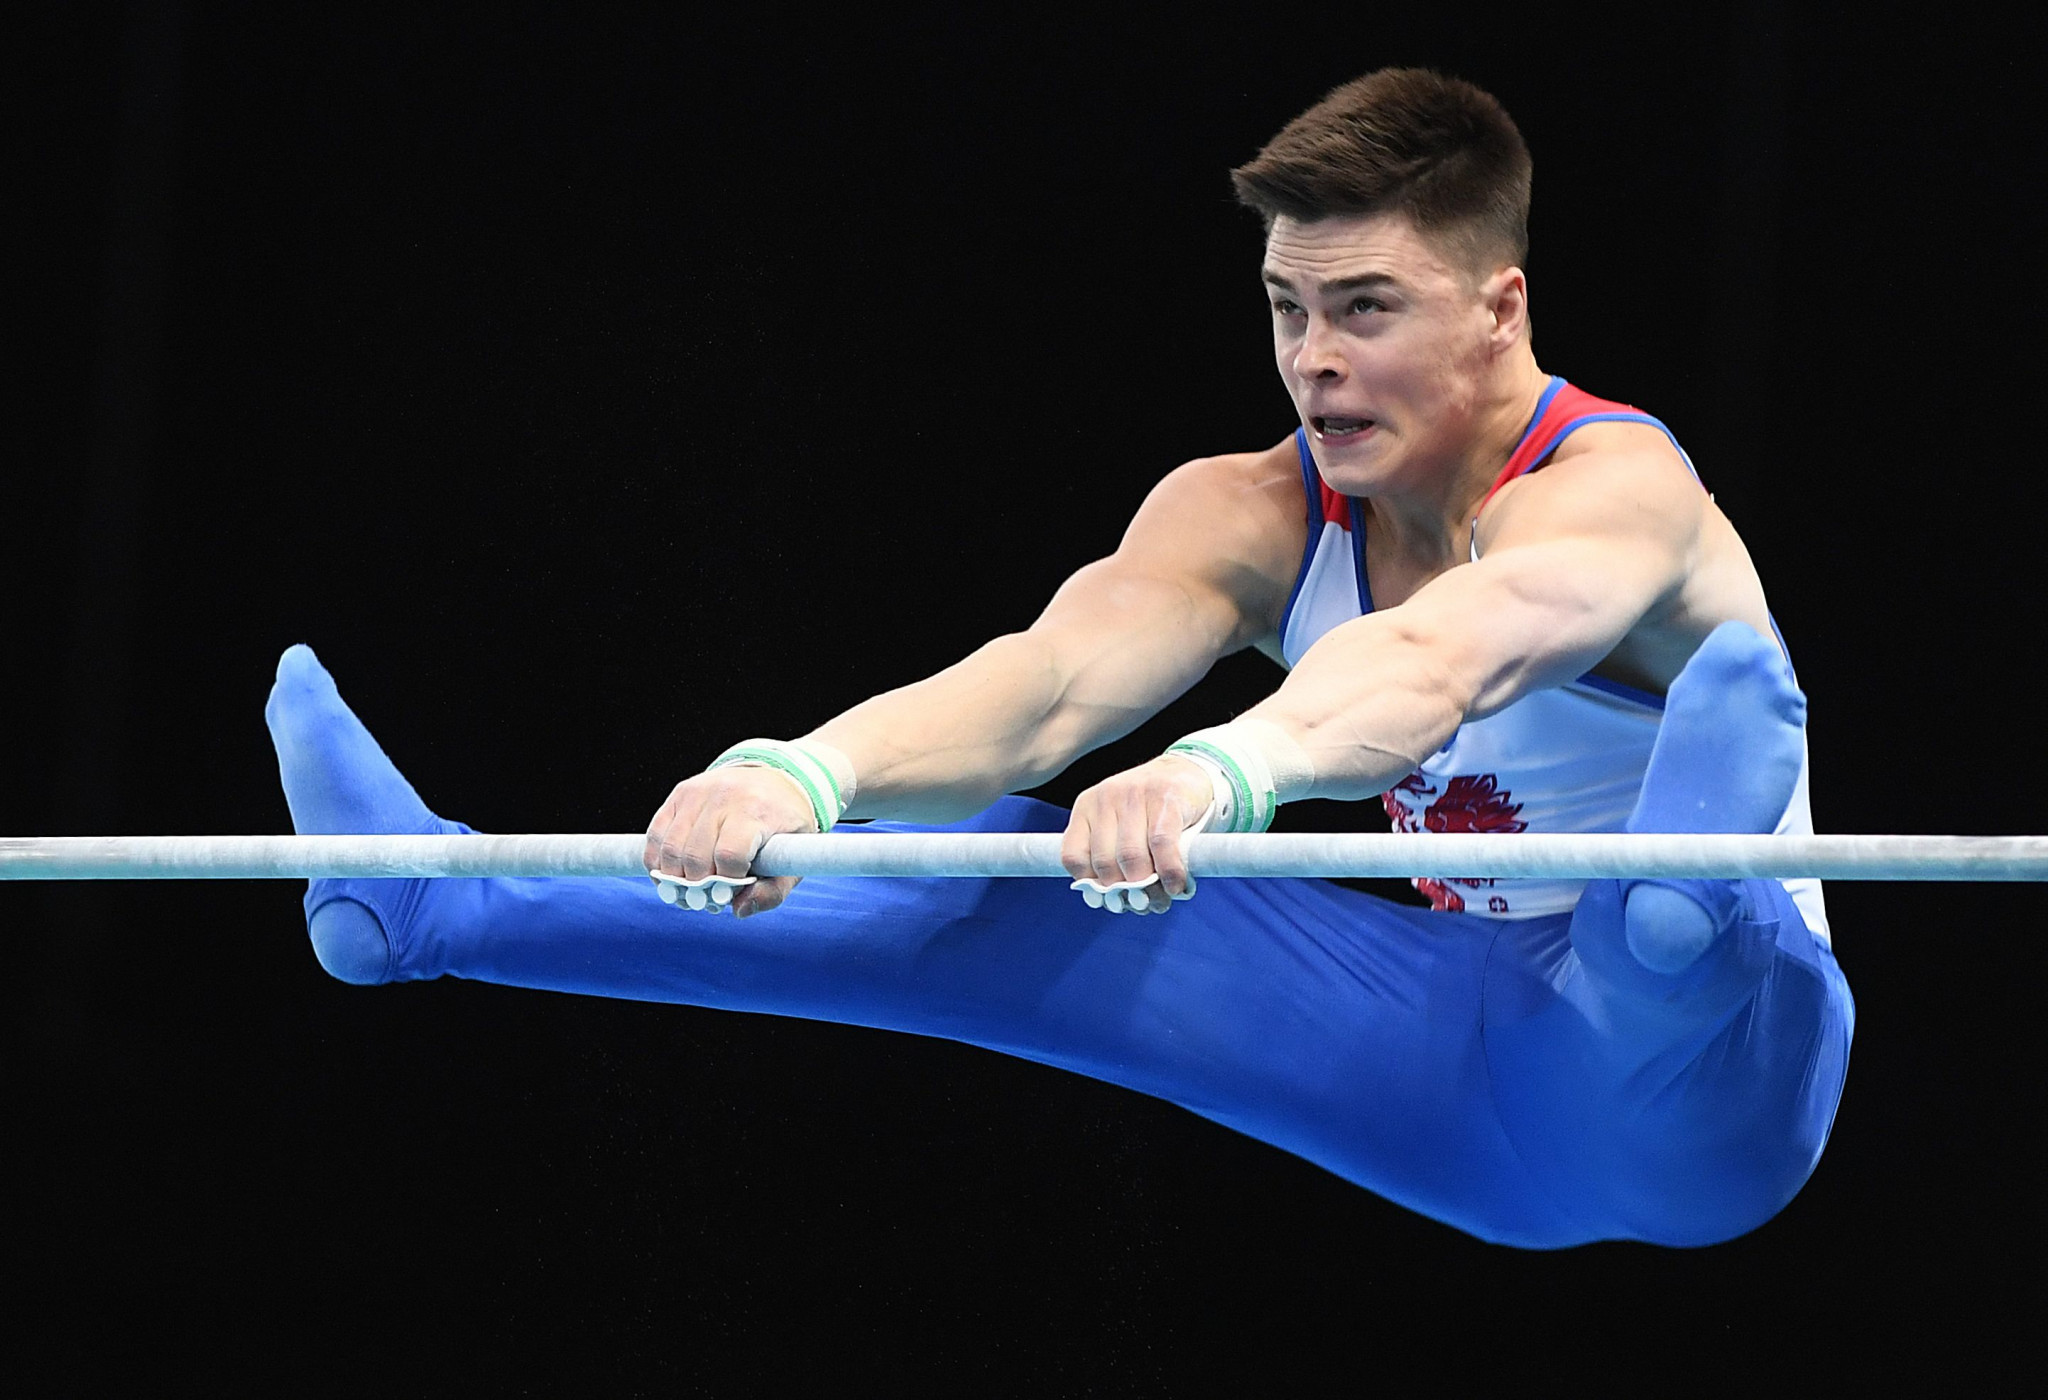 Russia's Nikita Nagornyy won his first all-around title at the European Artistic Gymnastics Individual Championships ©Getty Images